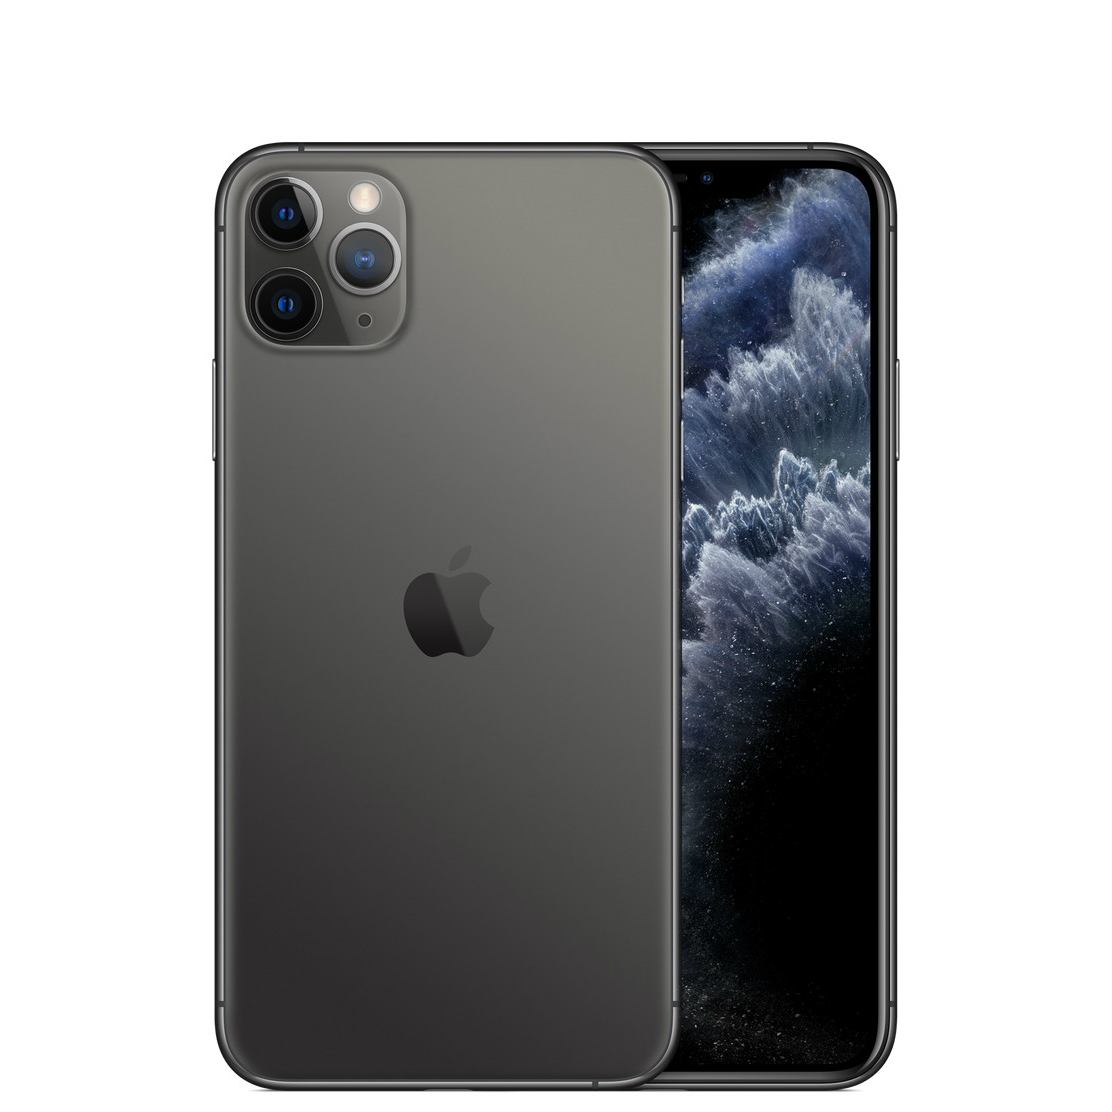 Image of Apple iPhone 11 Pro 512GB A2217 Dual Sim with Tempered Glass Screen Protector - Space Gray